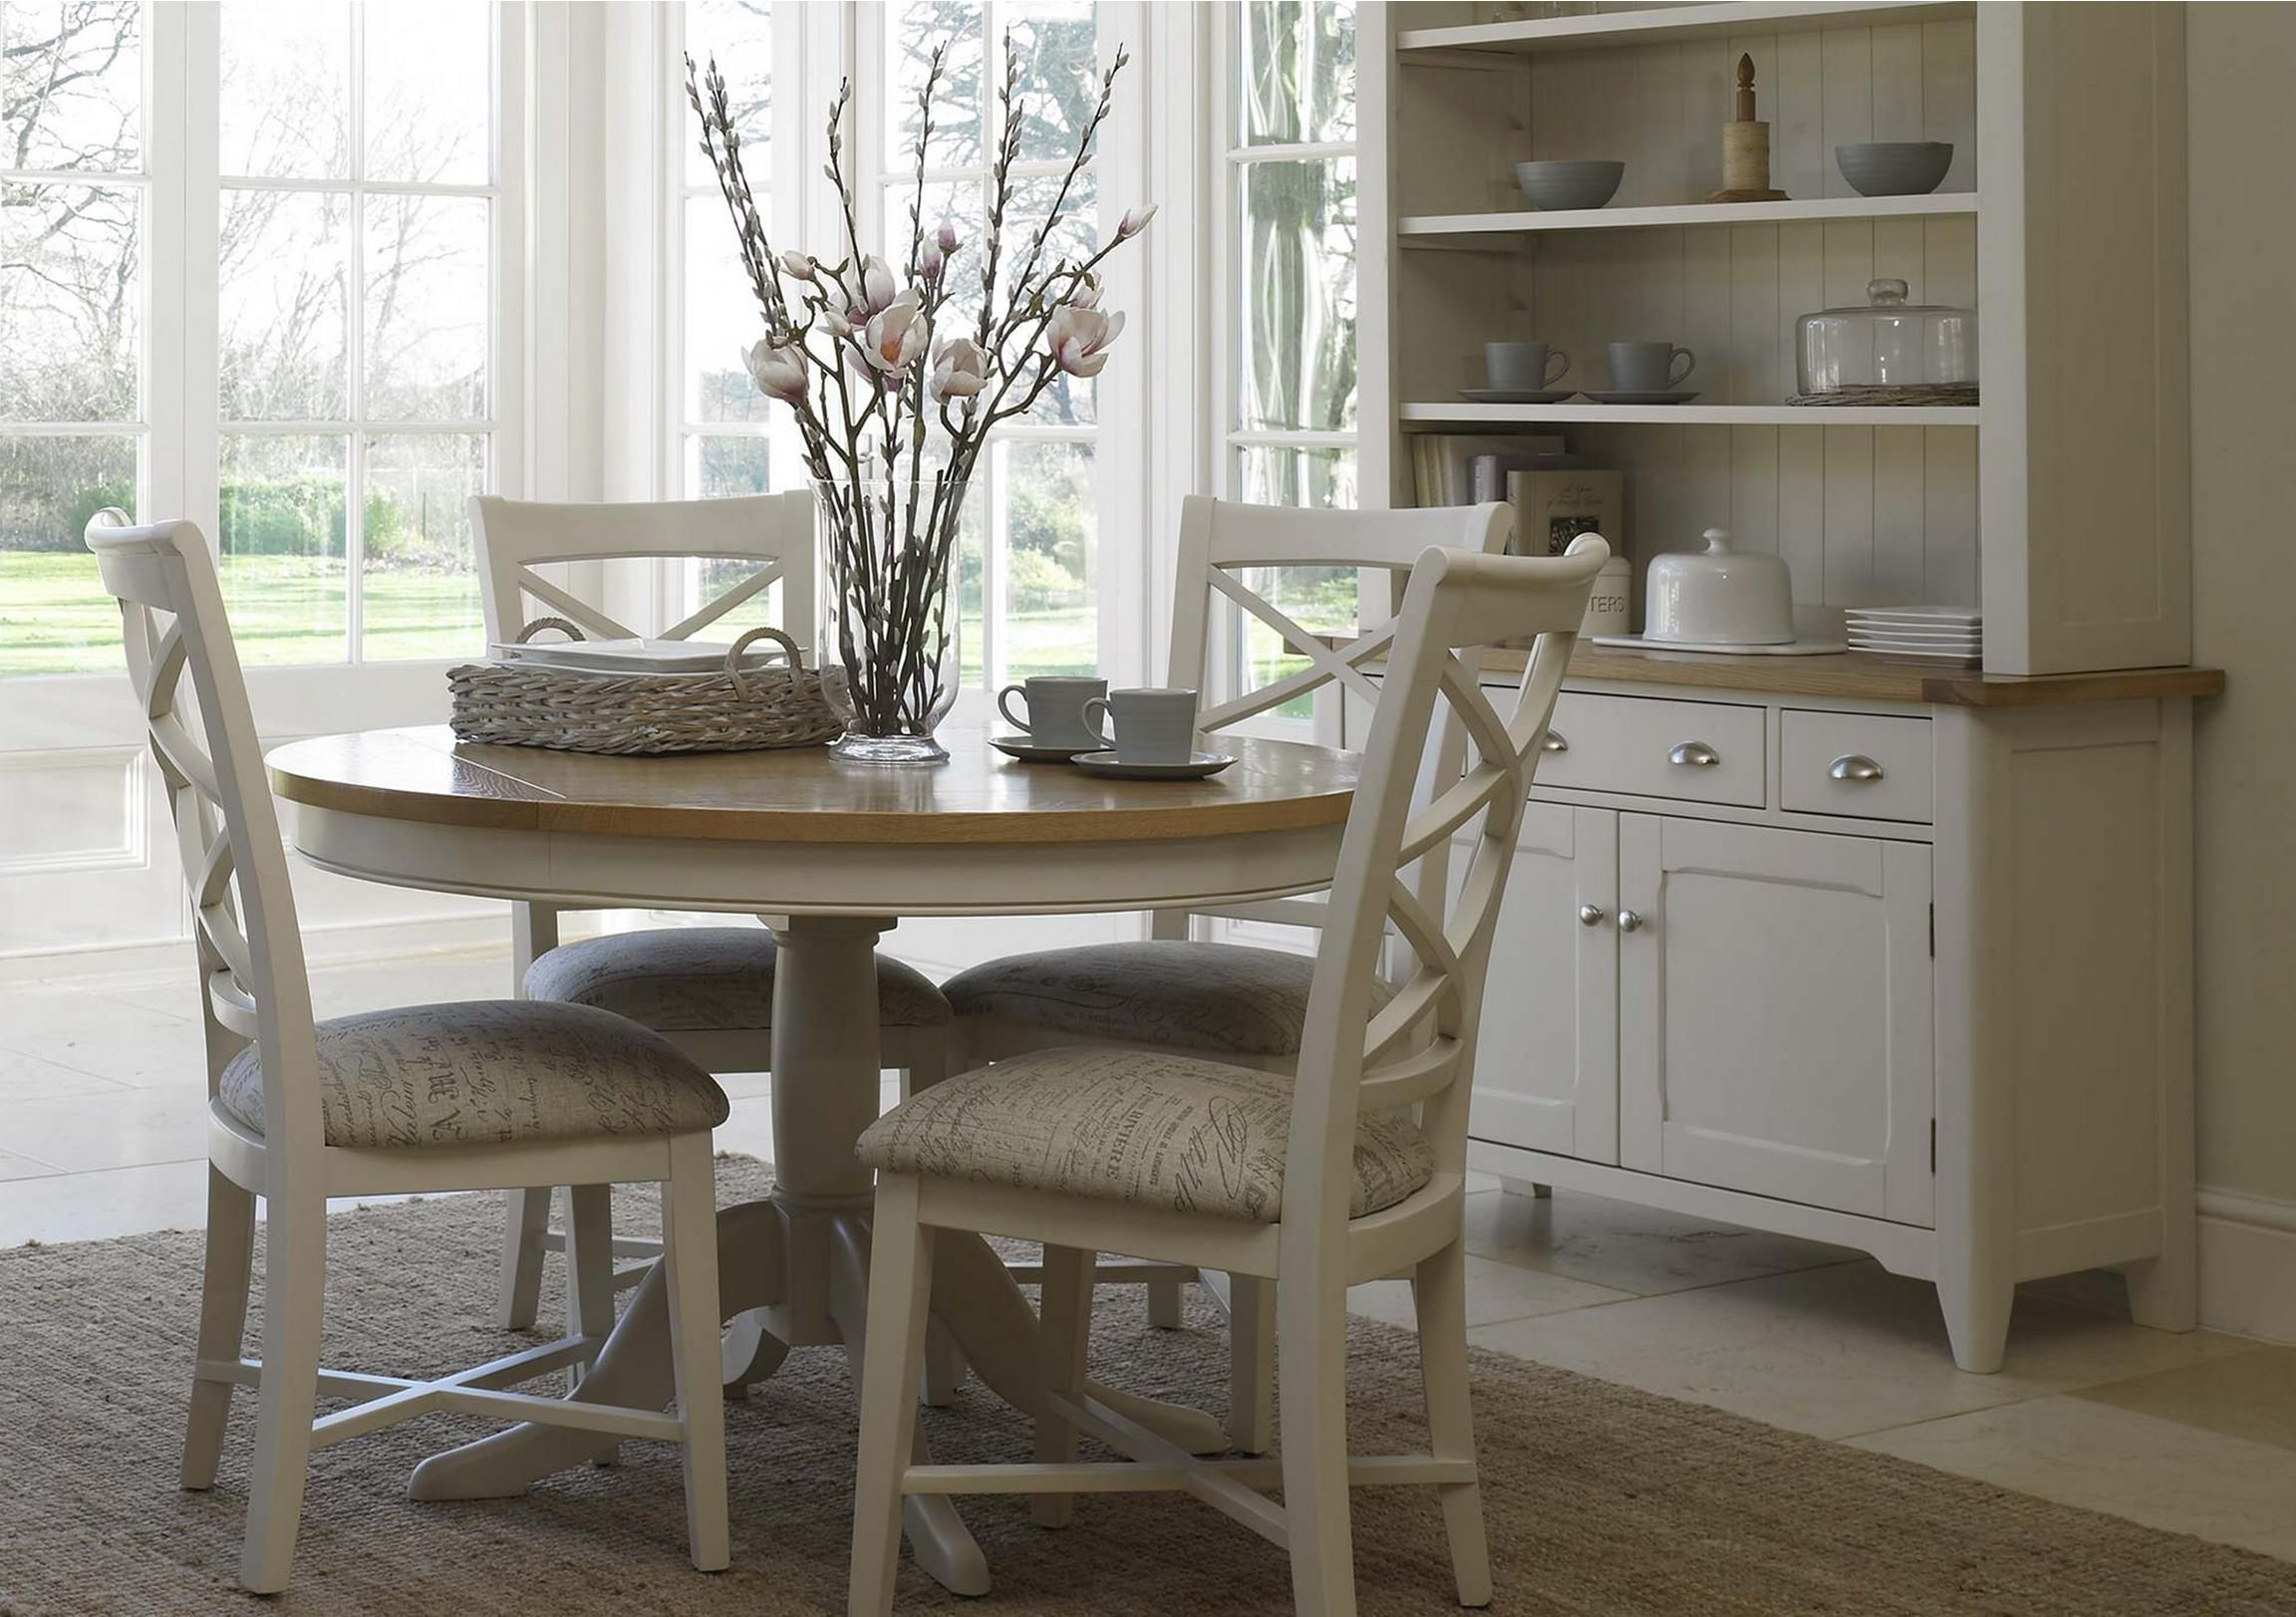 Arles Round Extending Dining Table Kitchen Table Settings Round